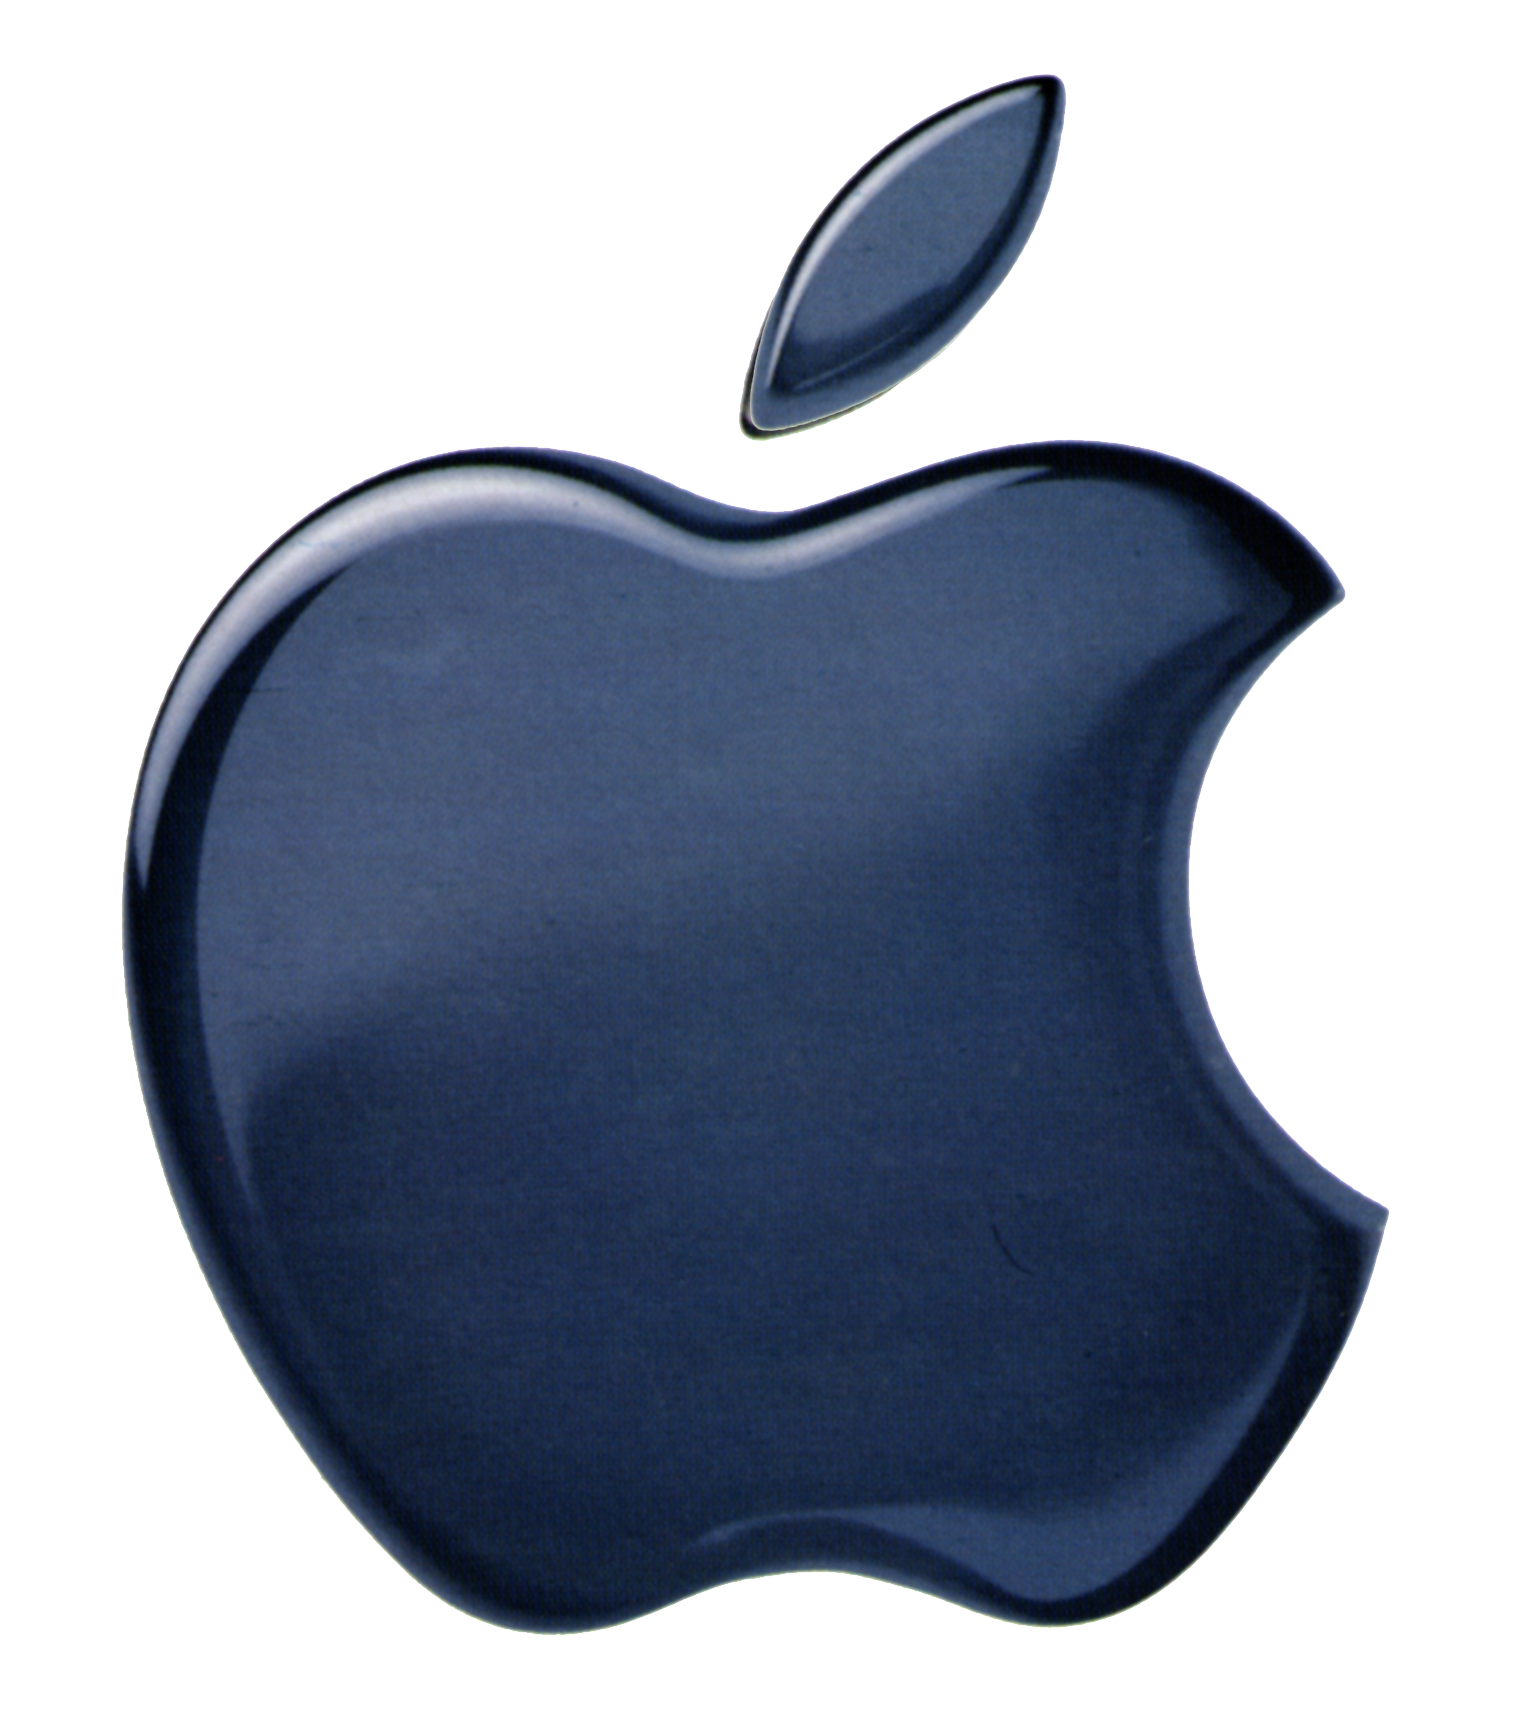 apple logo png ipad make music with ipad king the flat screen #9743